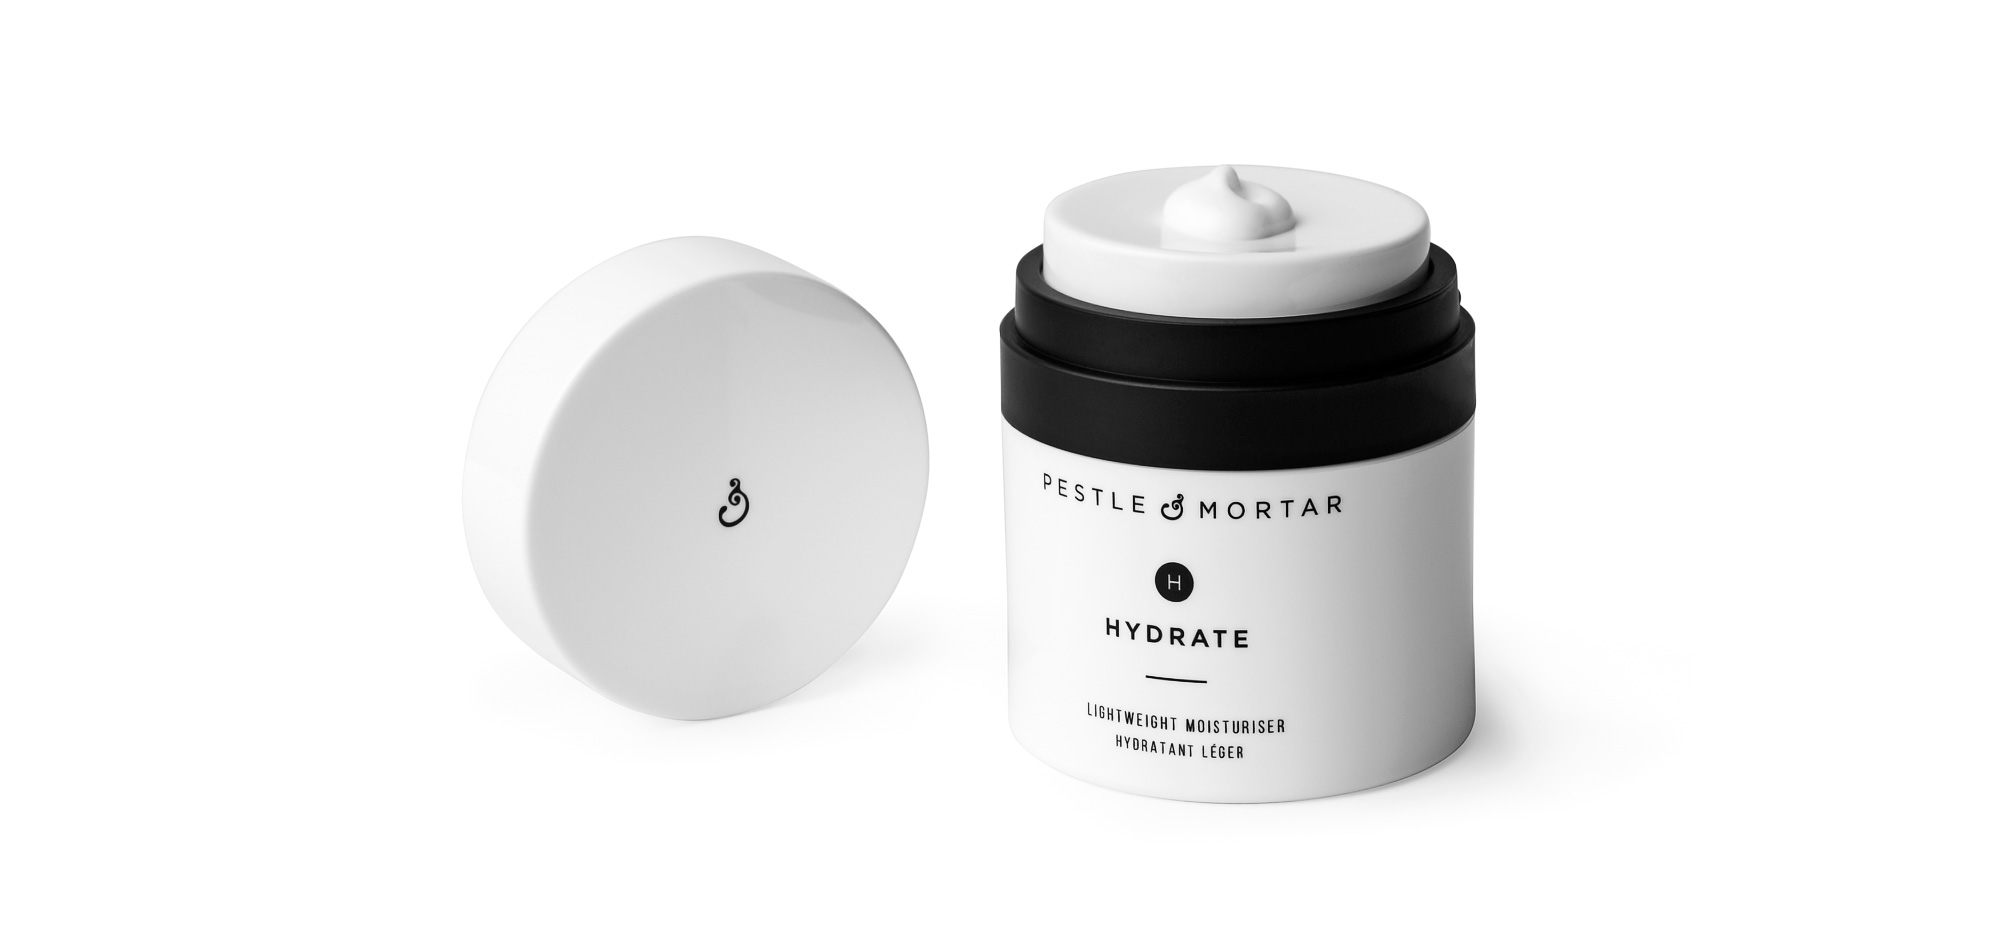 Our picks of Glycerine-centric products: Pestle & Mortar's  Lightweight Hydrate Moisturiser